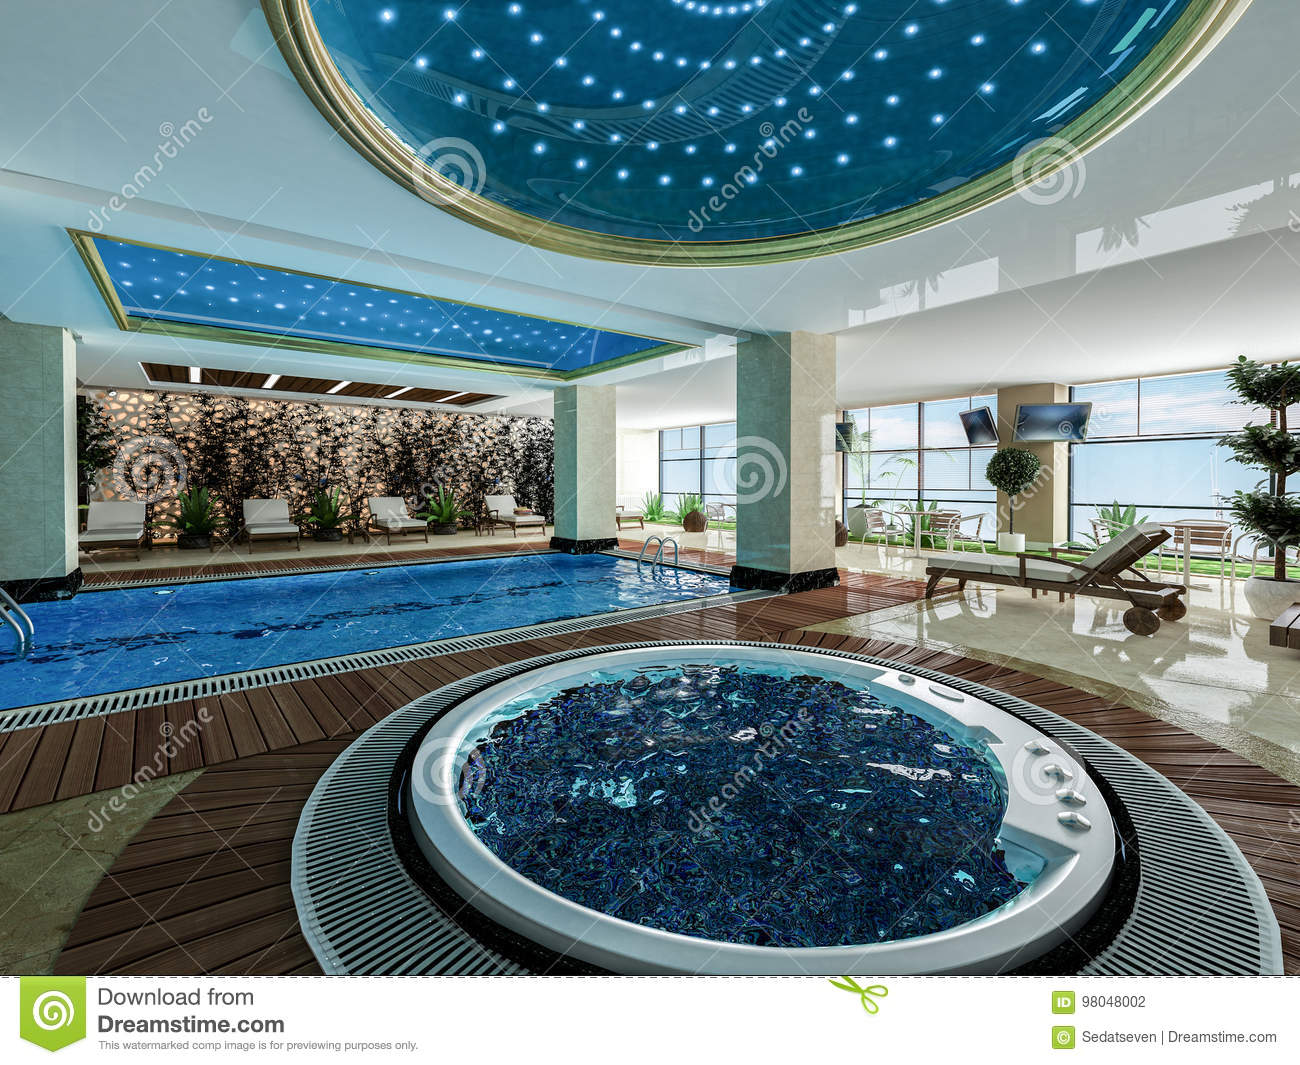 Jacuzzi Pool Design Indoor Swimming Pool And Jacuzzi Design Idea Stock Illustration